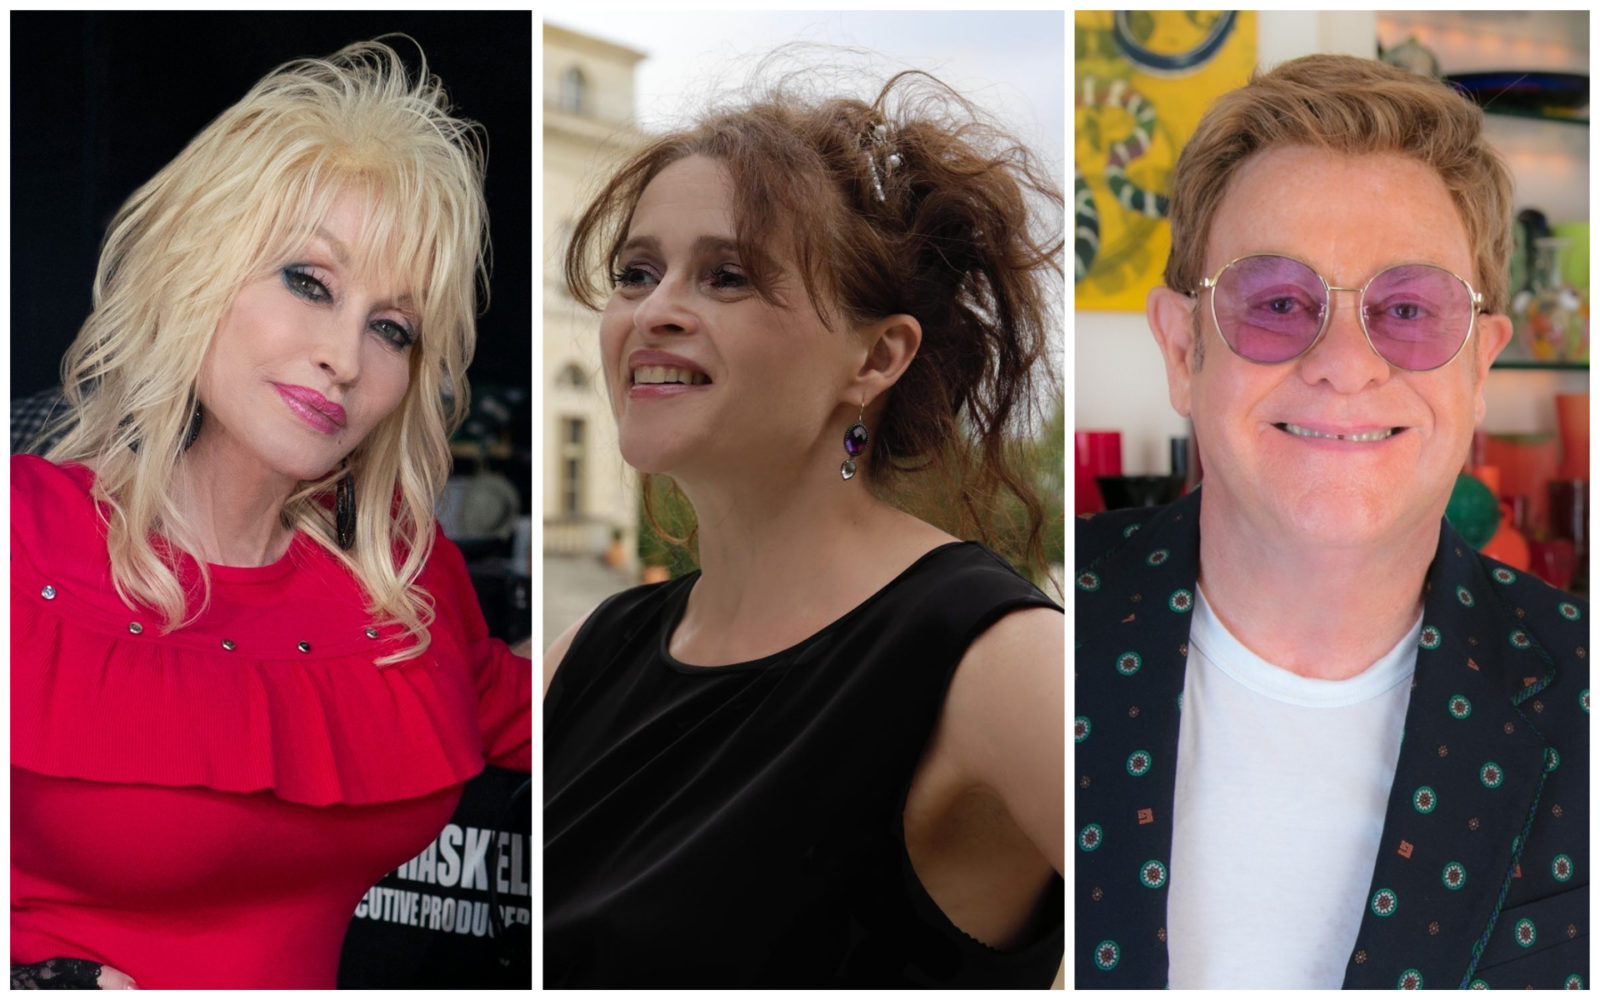 Ten best TV shows to watch this week, including Elton John's uncensored chat